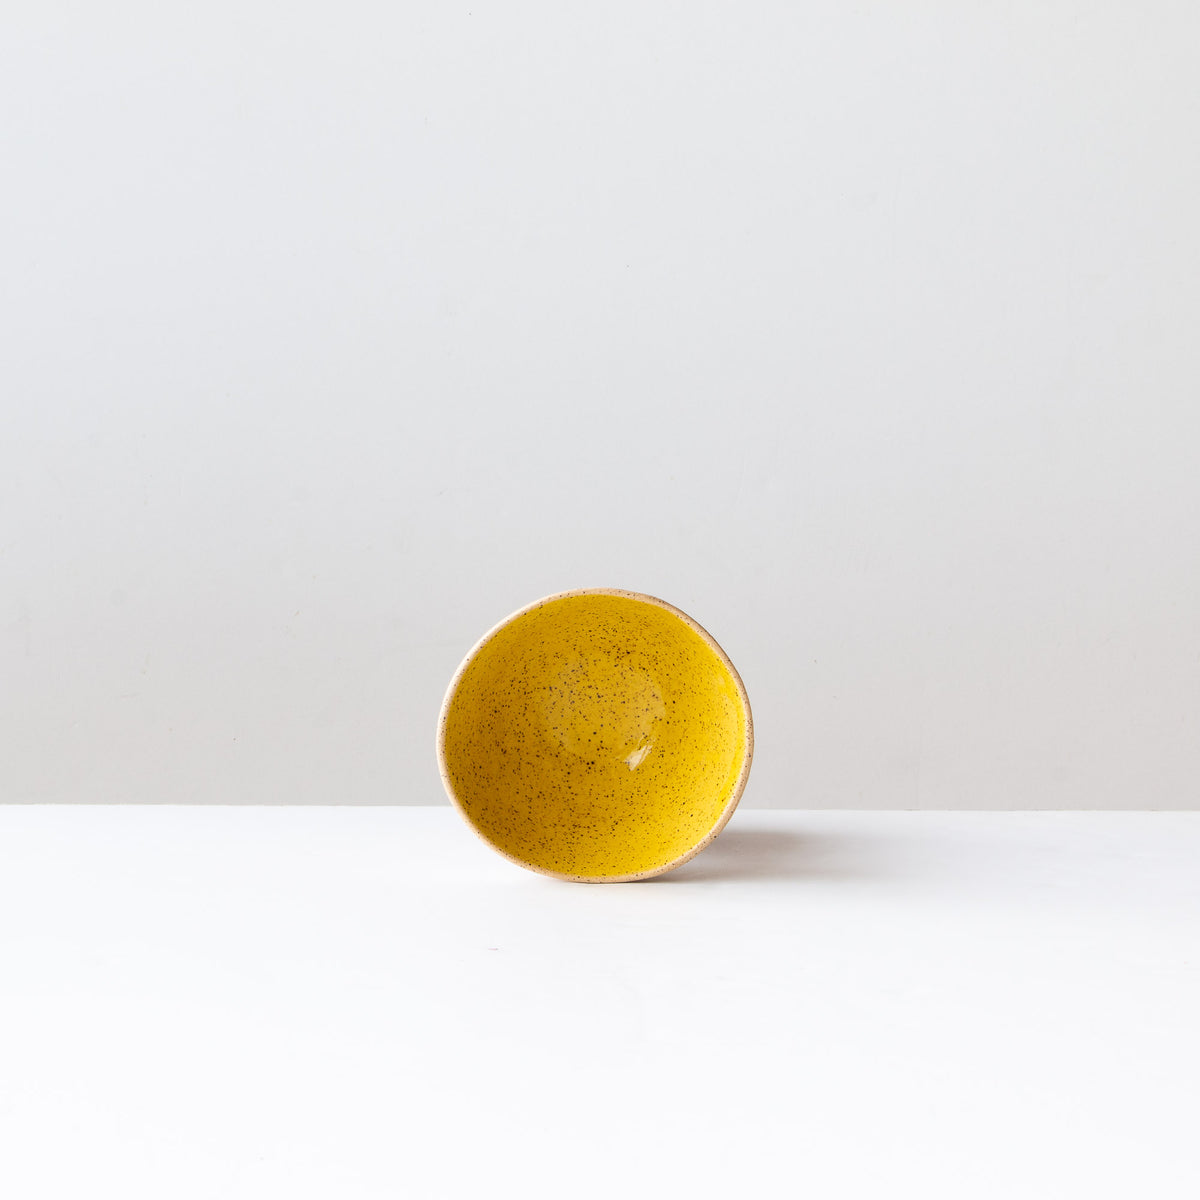 Yellow Handmade Freckled Ice Cream Bowl in Sandstone Ceramic - Sold by Chic & Basta